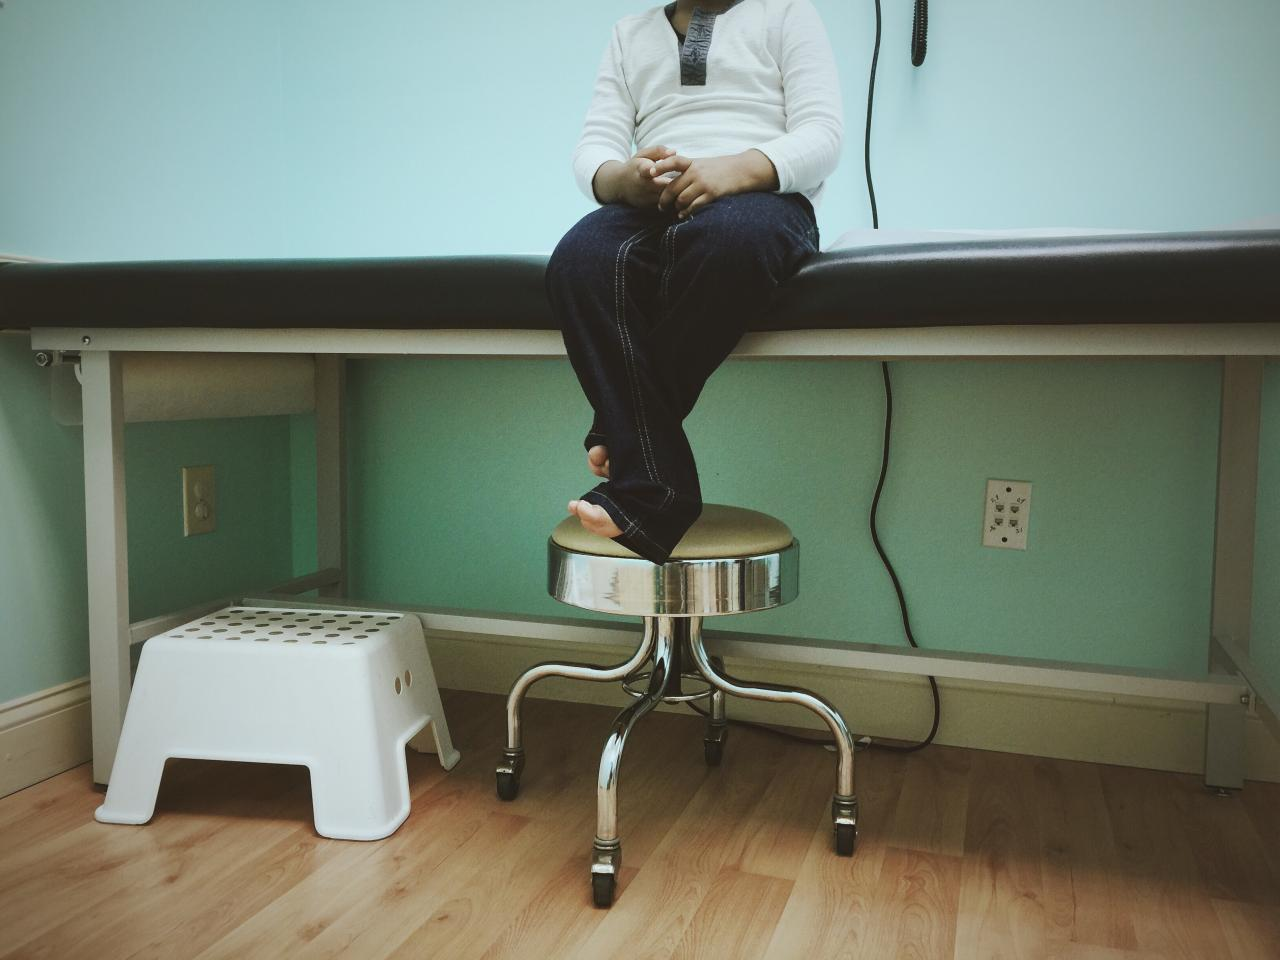 Patient sitting in a doctor's exam room